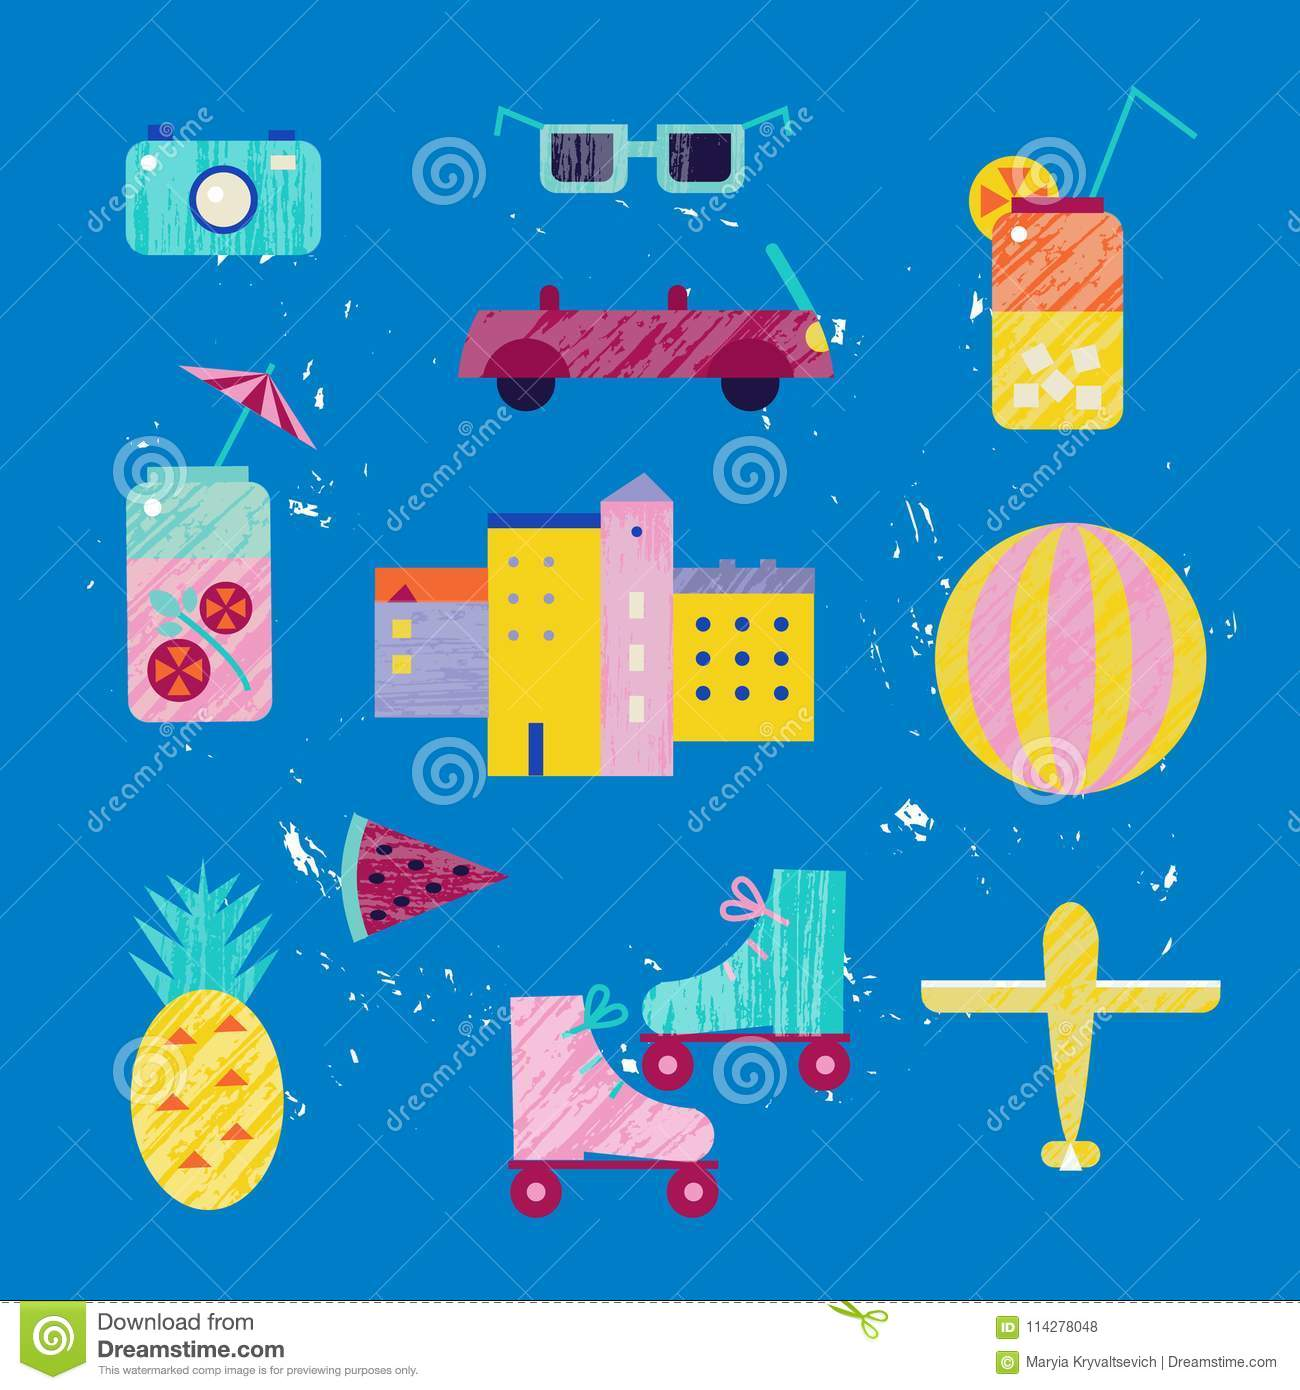 Vector summer colorful illustration, travelling, holidays. Set of town, city, beach objects, isolated on blue background